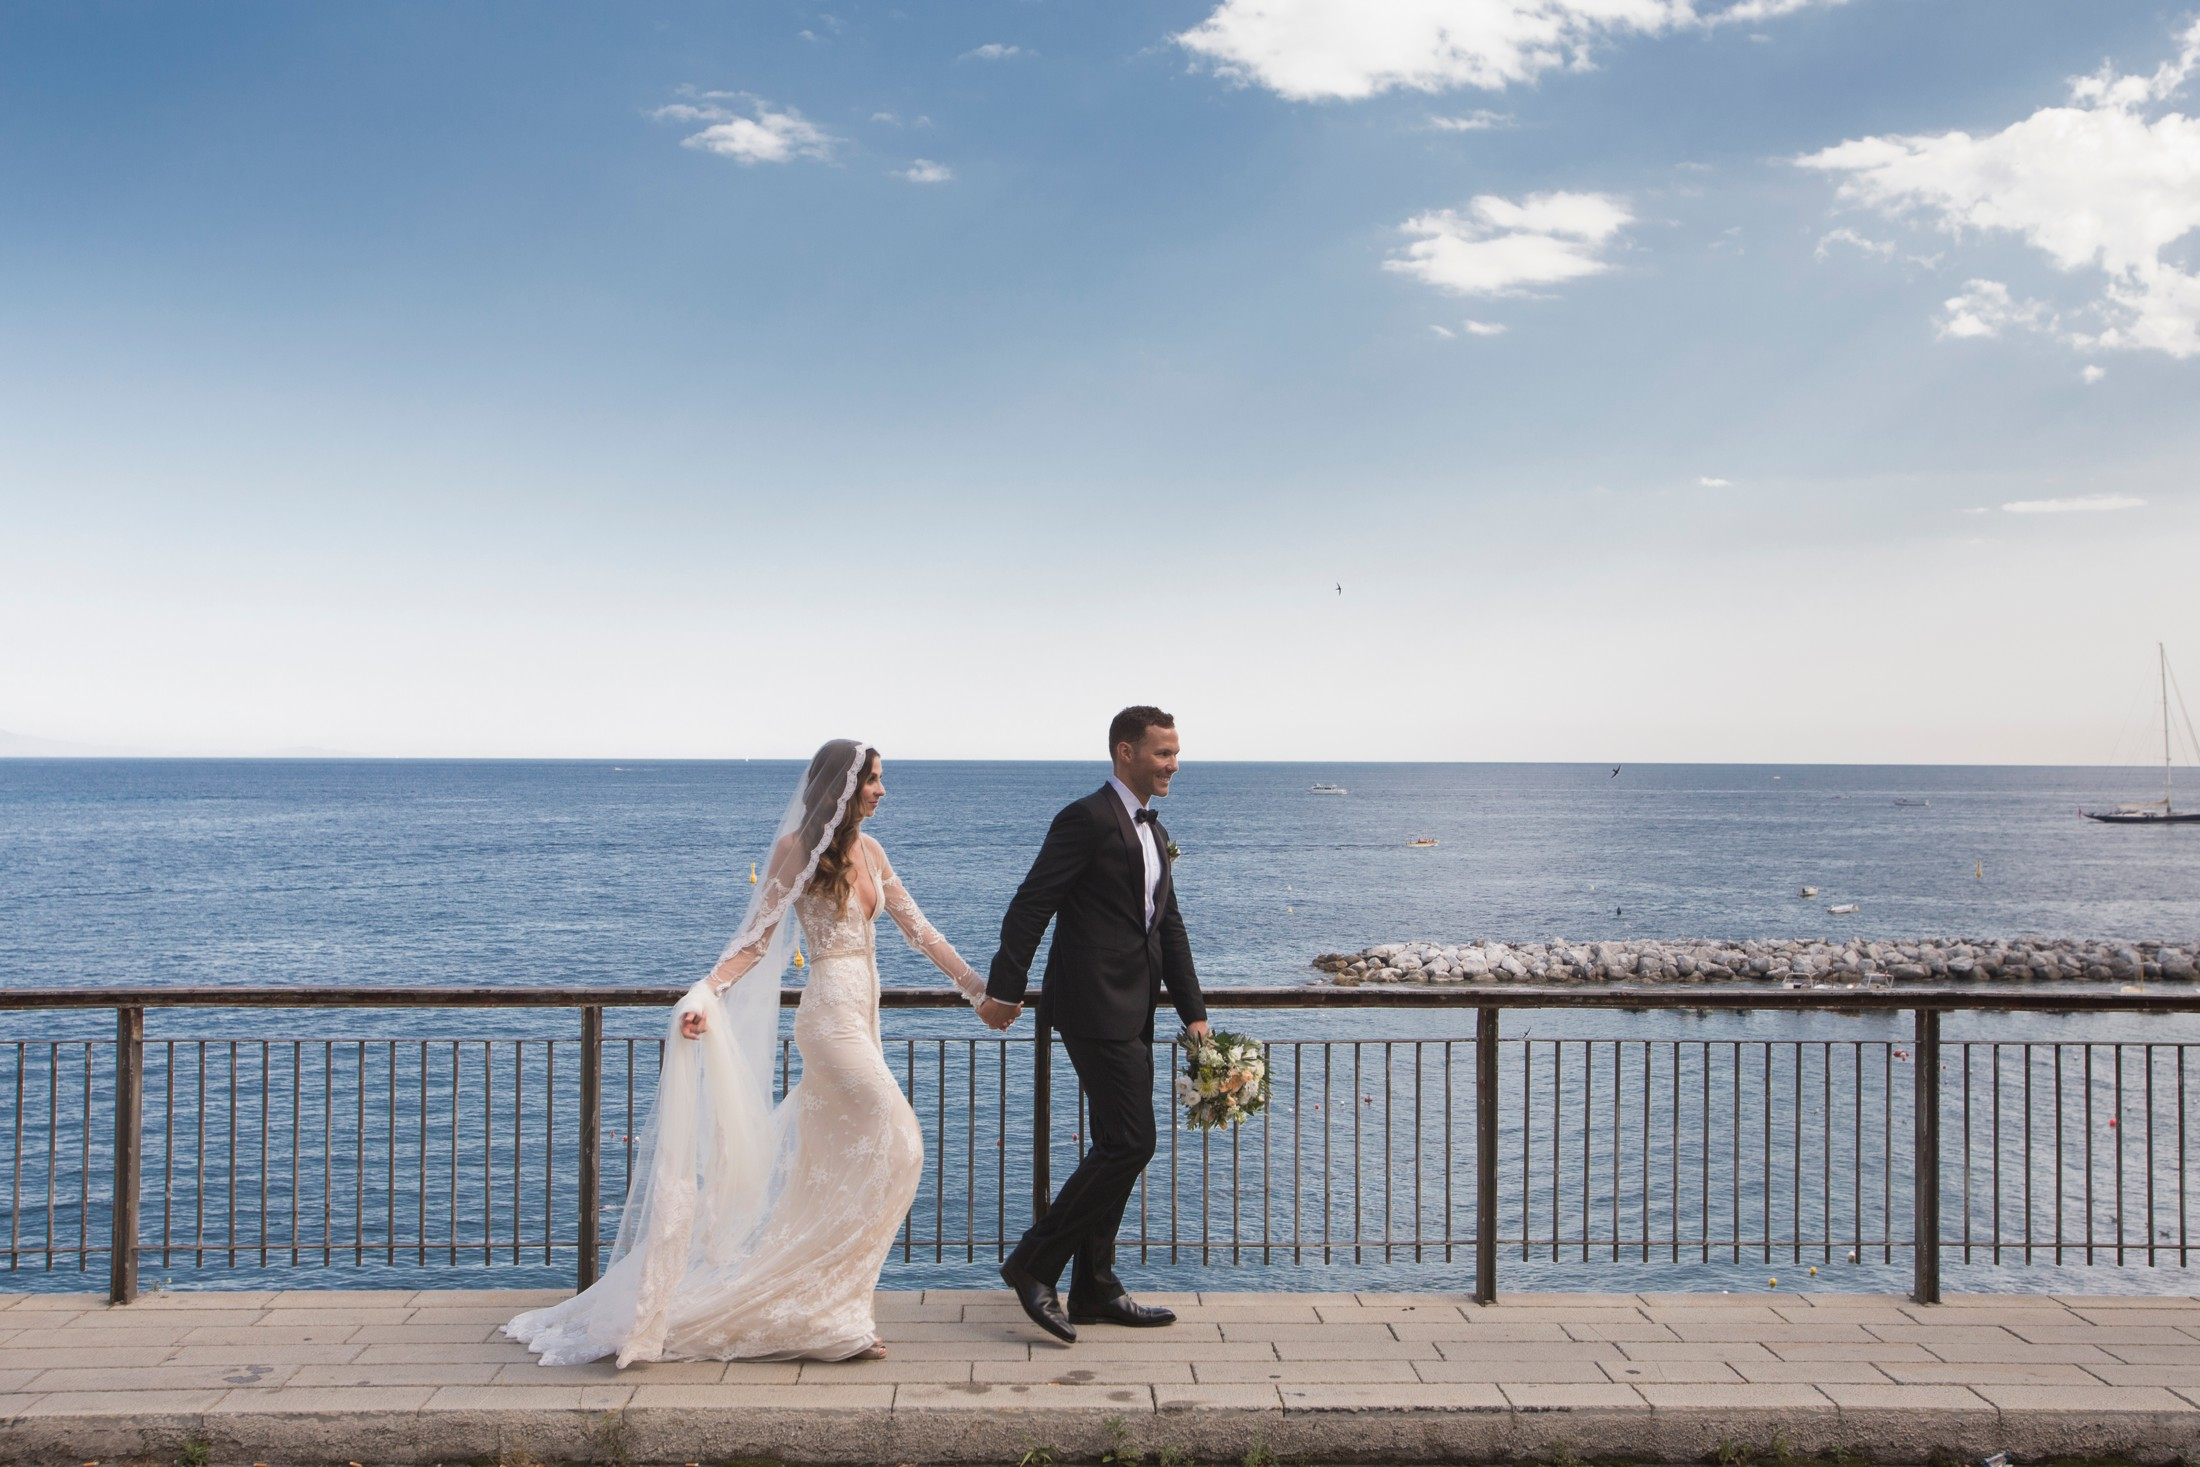 bride and groom walking together with the sea on the background